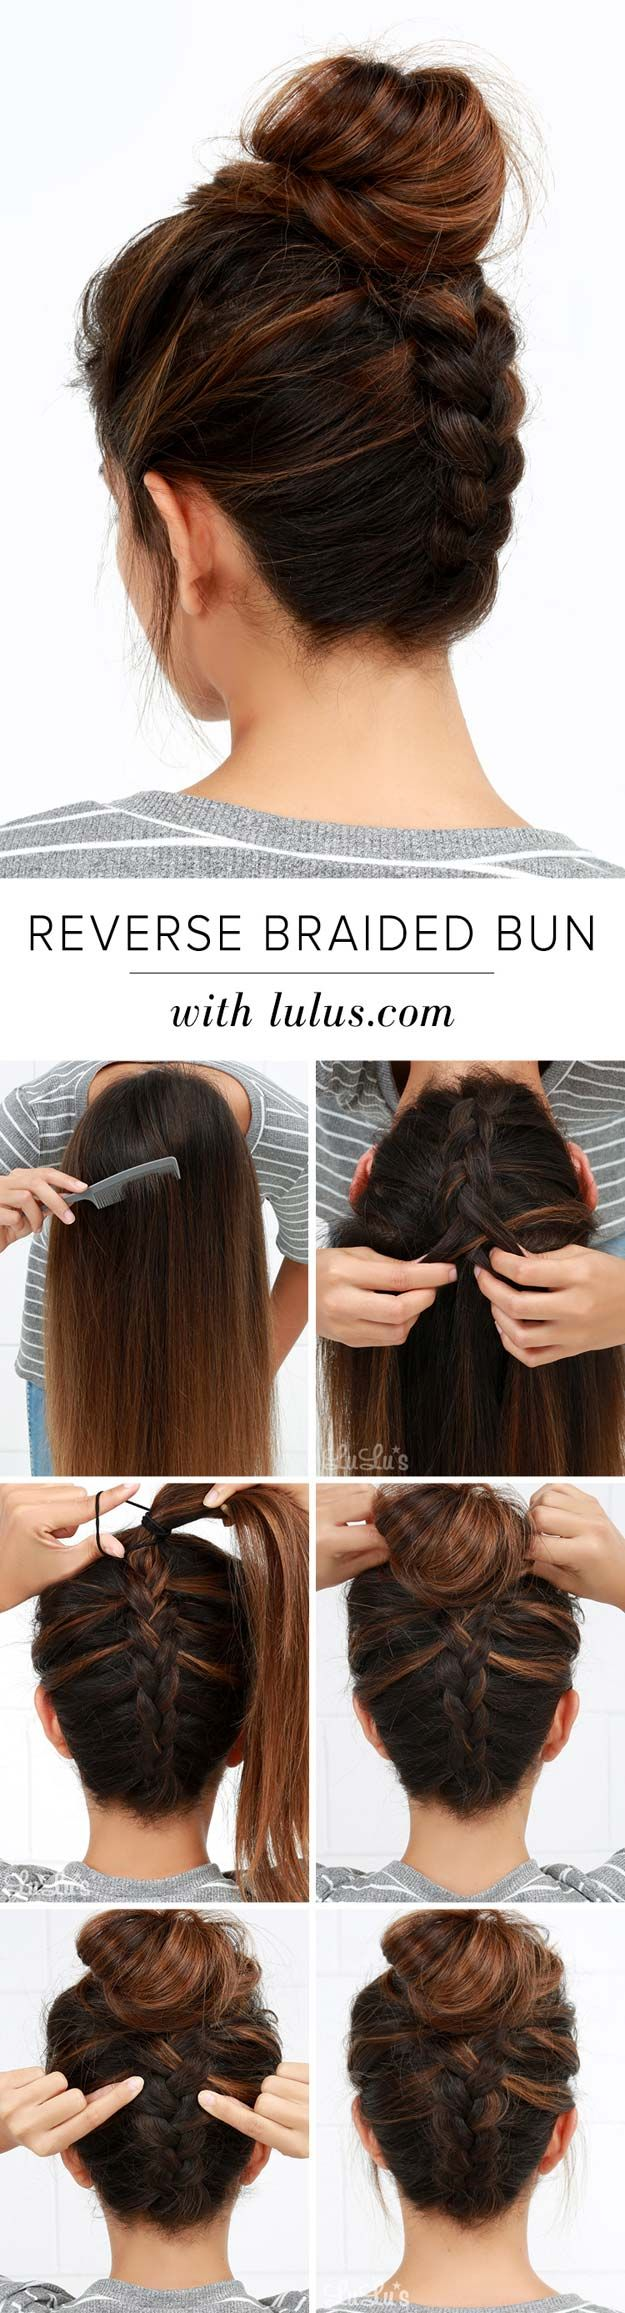 Fabulous 1000 Ideas About Easy Casual Hairstyles On Pinterest Messy Short Hairstyles Gunalazisus